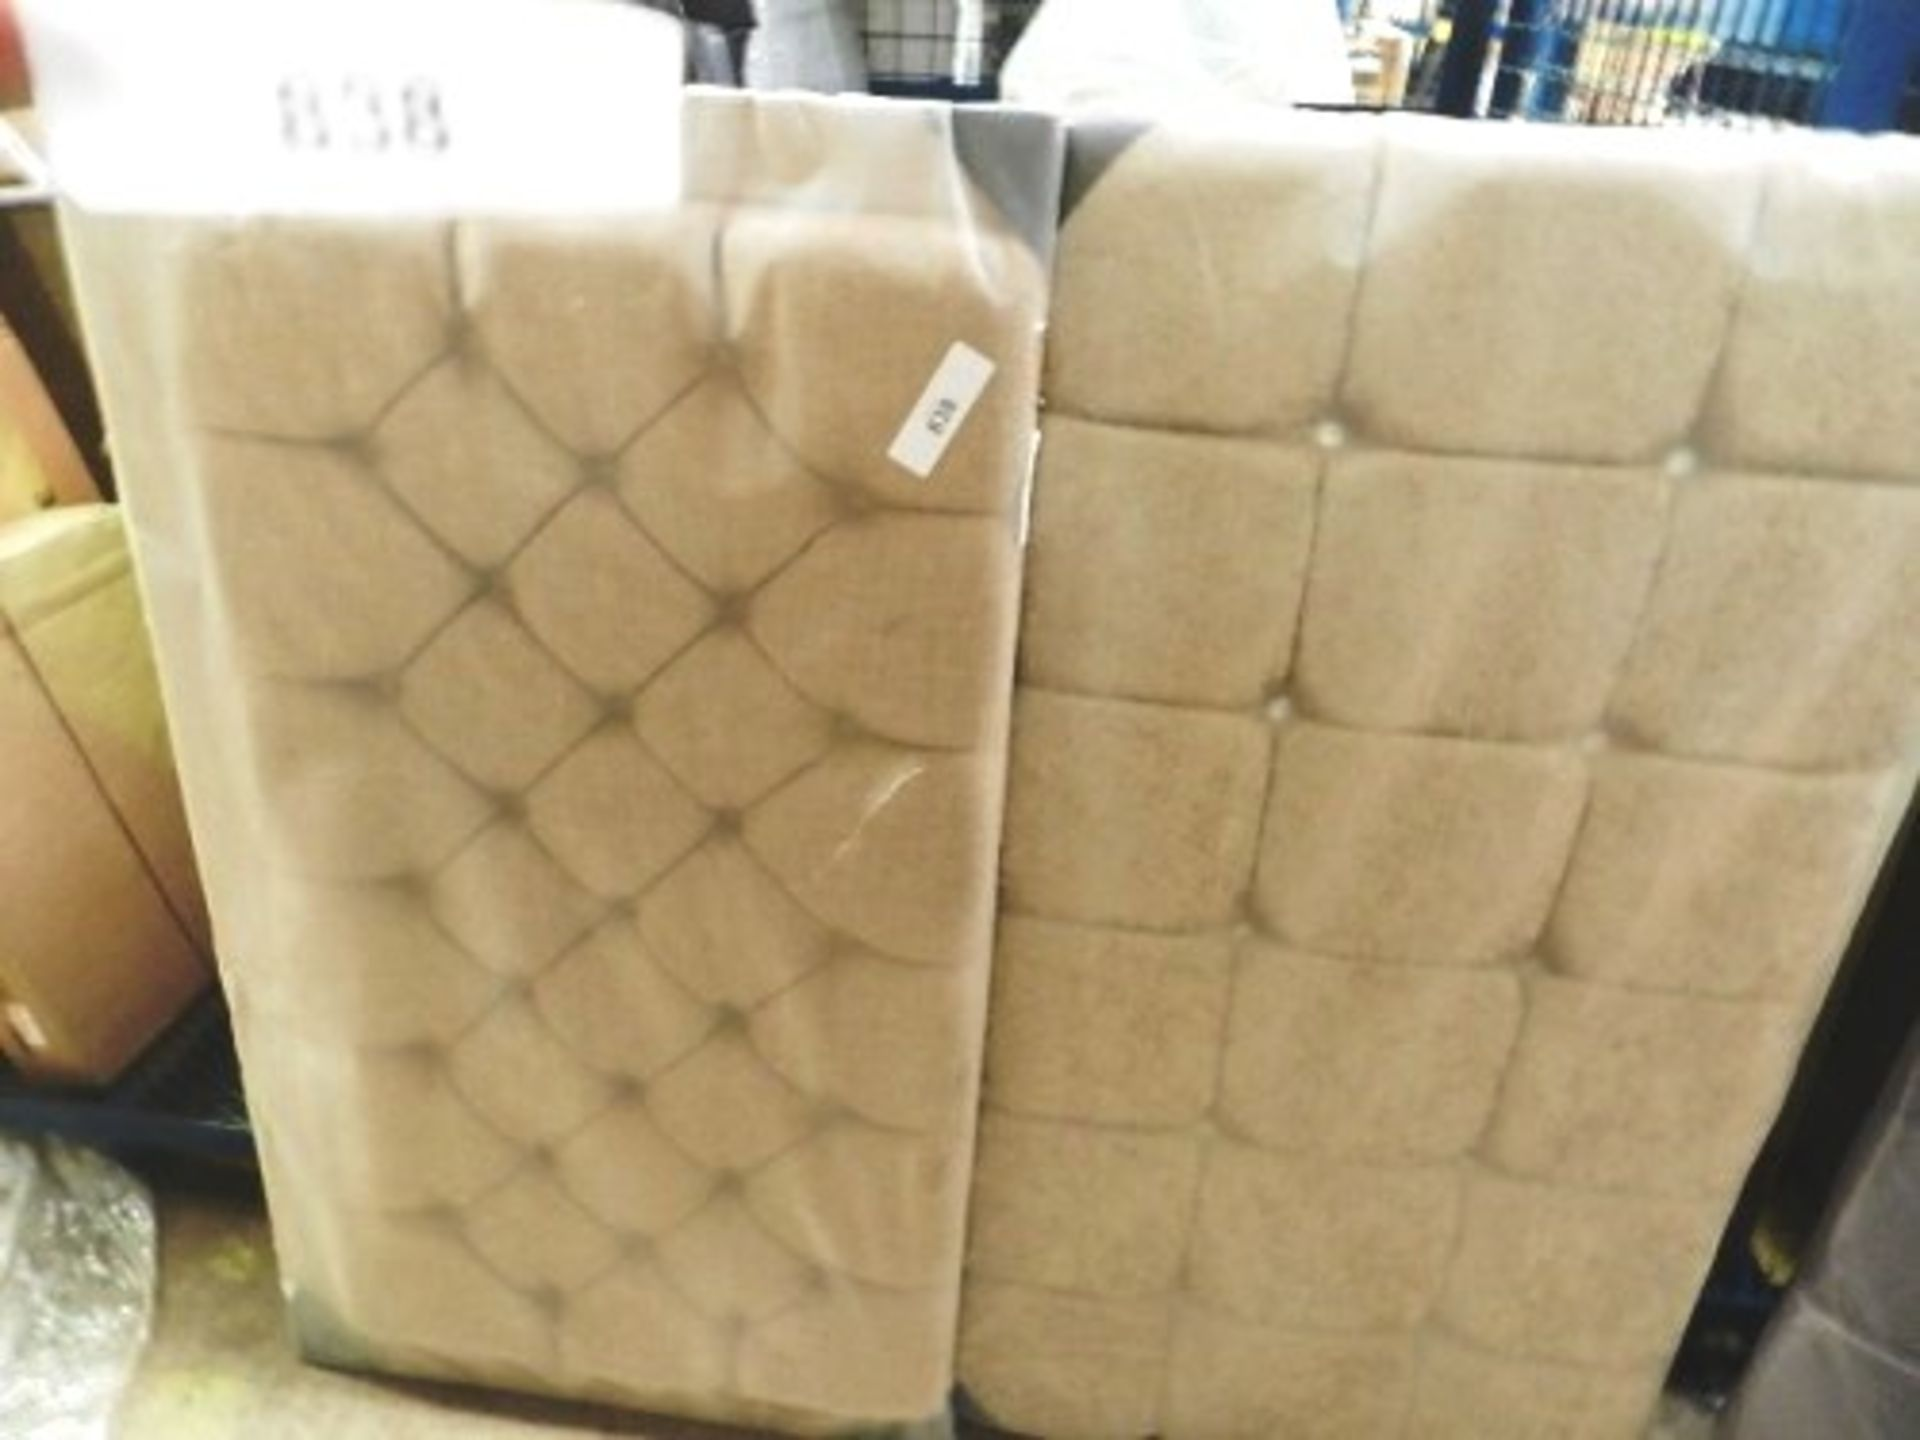 Lot 838 - 1 x 10 stud diamond beige headboard, 135cm x 75cm and a 27 stud headboard, 140cm x 78cm - Sealed new